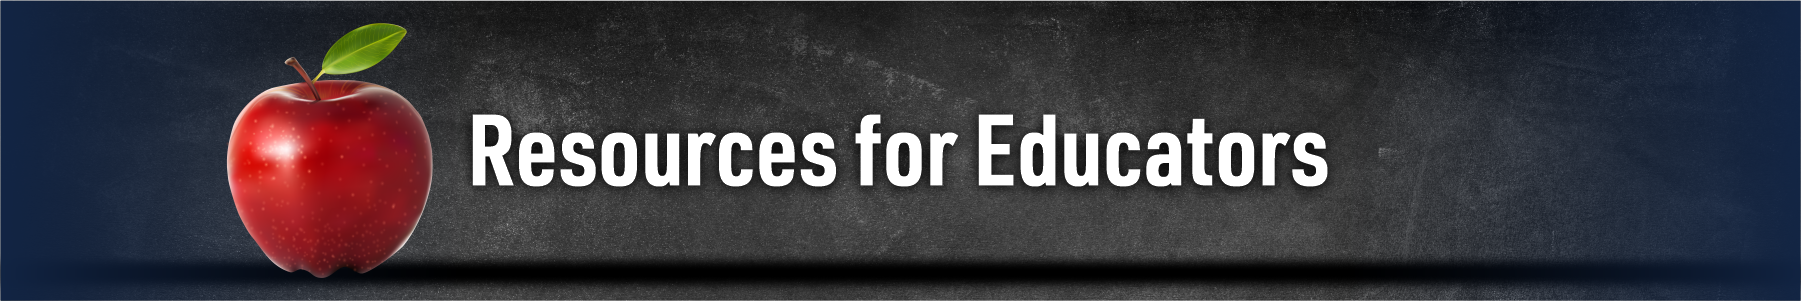 Red apple with text that reads Resources for Educators